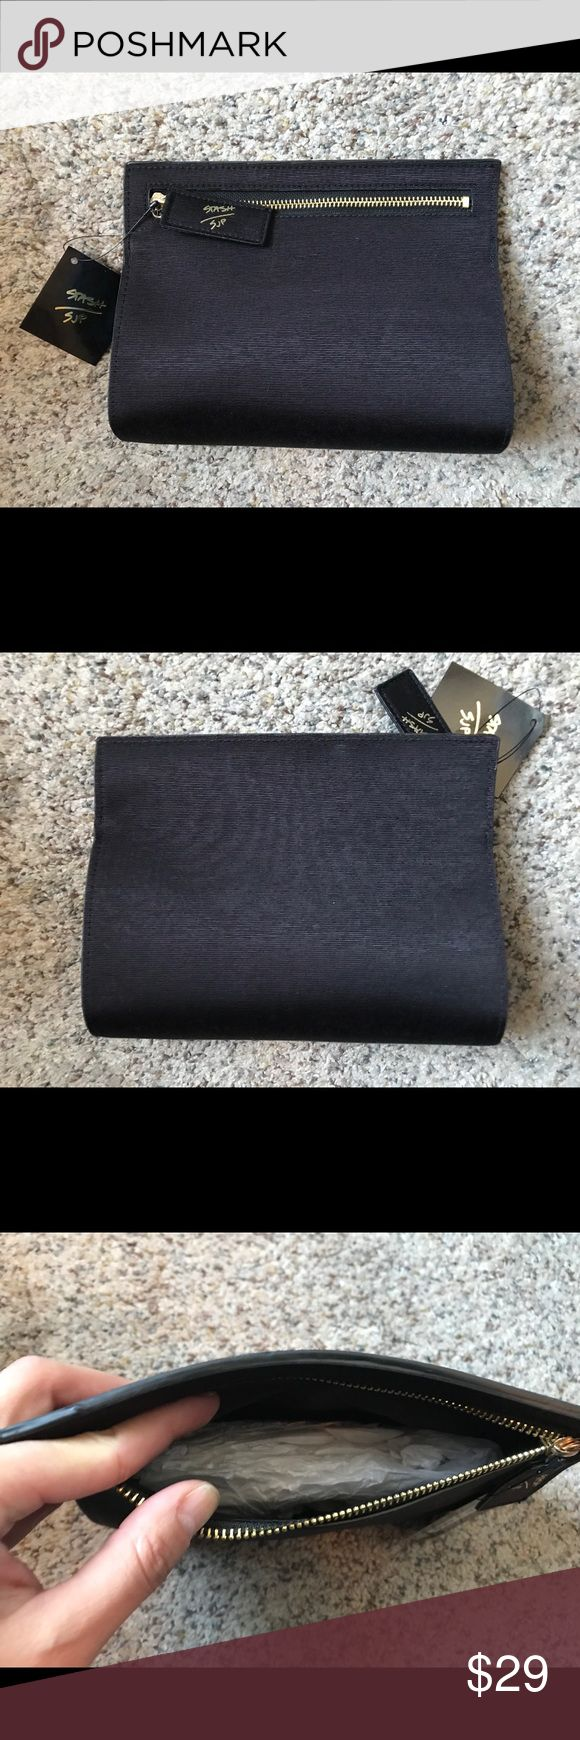 Black Sarah Jessica Parker Stash Clutch SJP Stash black clutch. No to big, not to small. Perfect for an evening, fancy or casual. Brand new needing a new home for some loving. height – 7 inches length – 8 inches width –  1.75 inches SJP Sarah Jessica Parker Bags Clutches & Wristlets